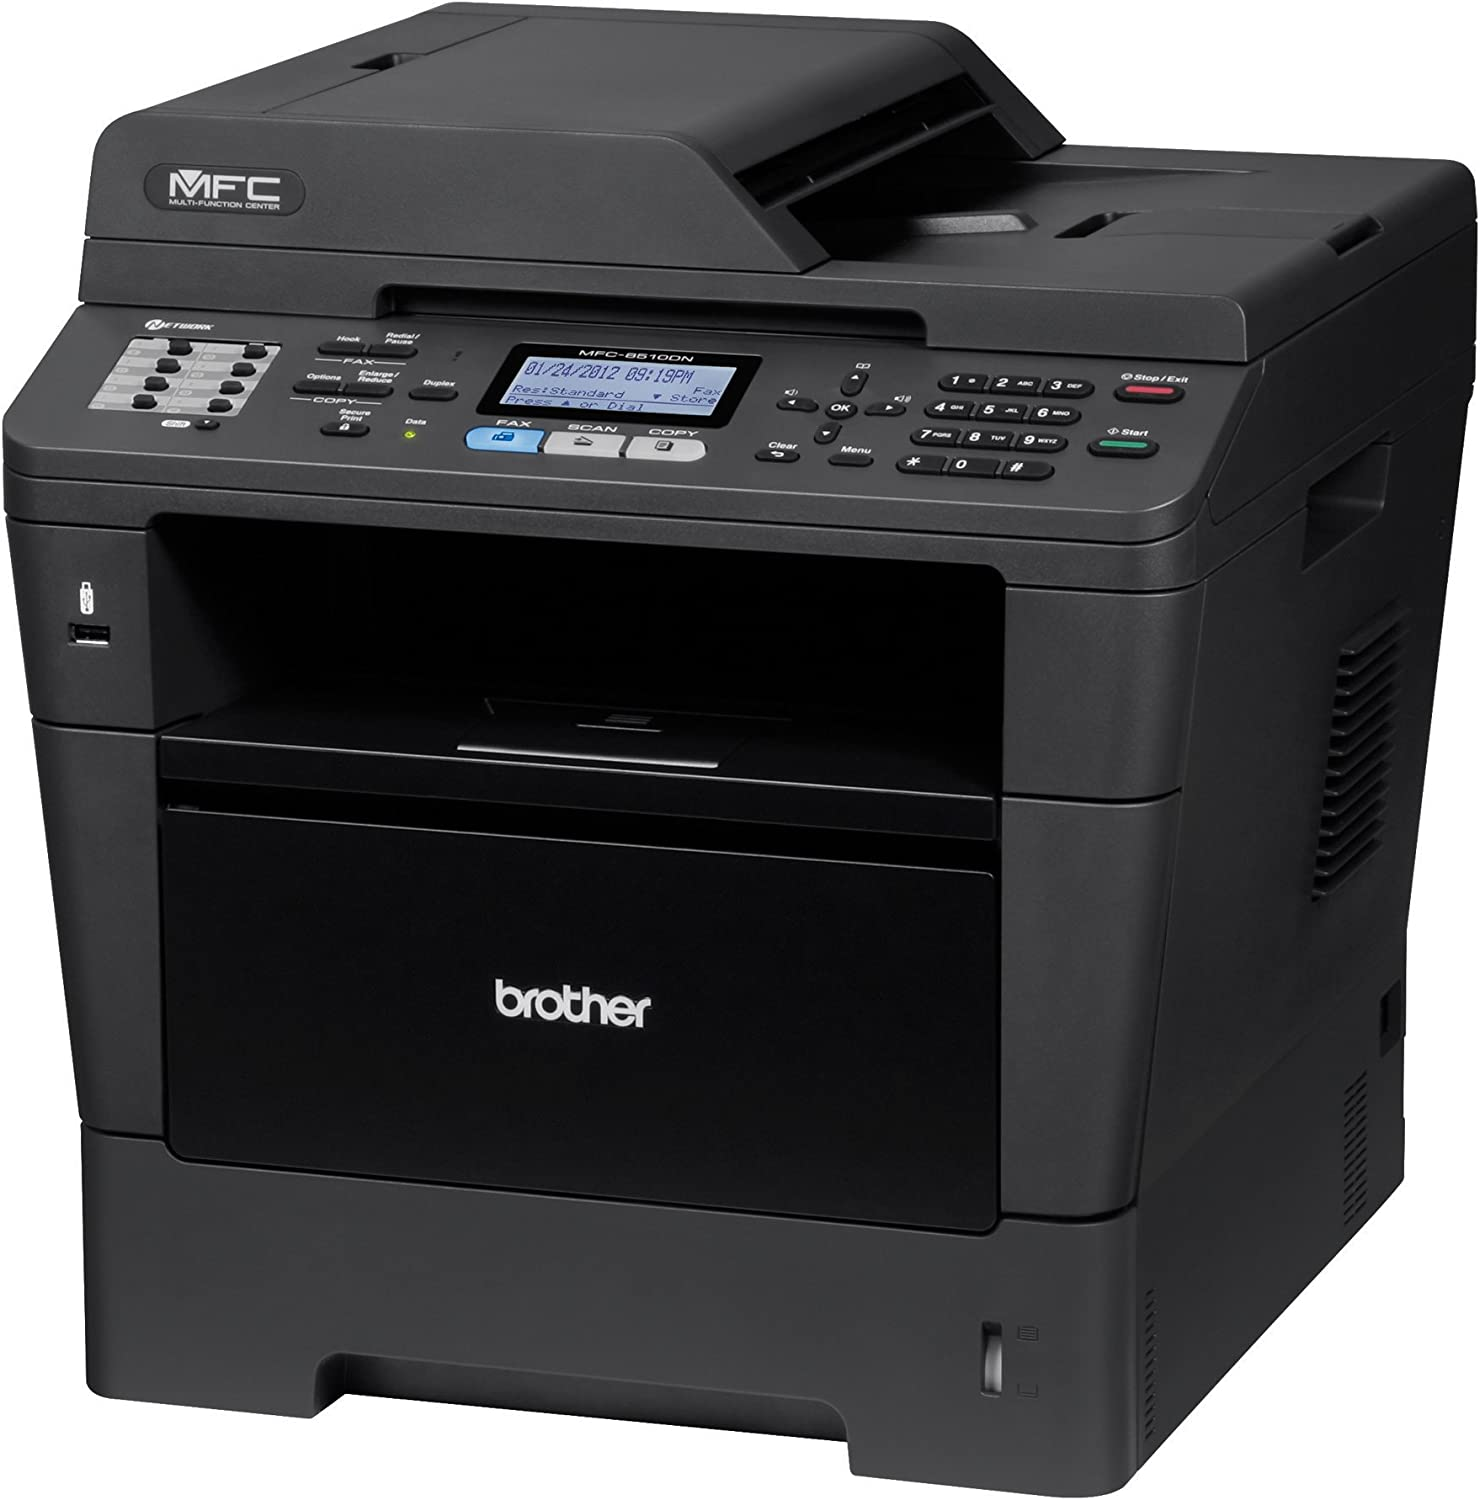 Brother MFC8510DN Monochrome Printer with Scanner, Copier and Fax, Amazon Dash Replenishment Ready